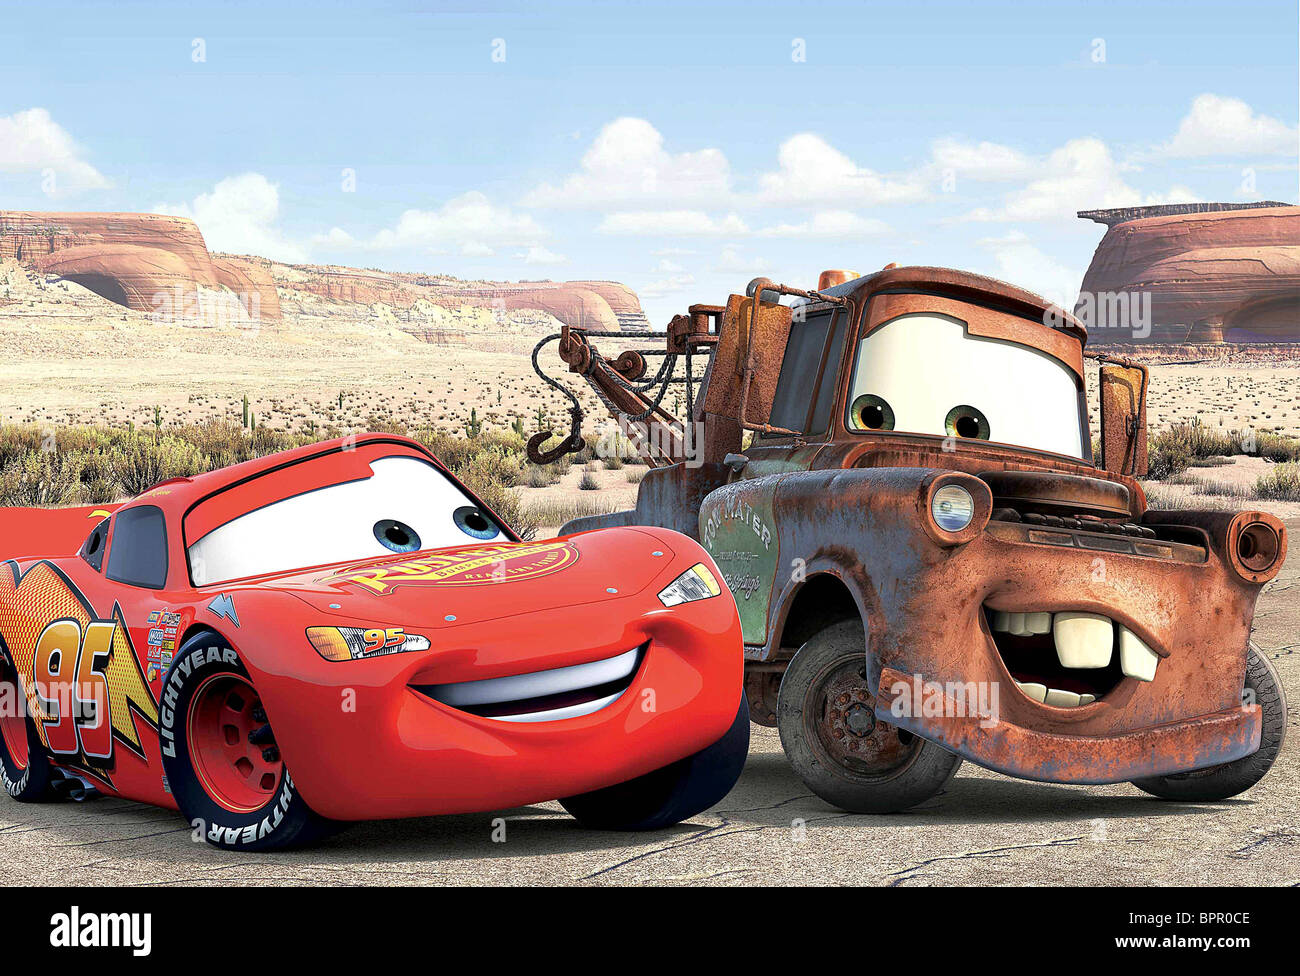 Lightning mcqueen mater cars 2006 stock photo 31238046 alamy - Images flash mcqueen ...